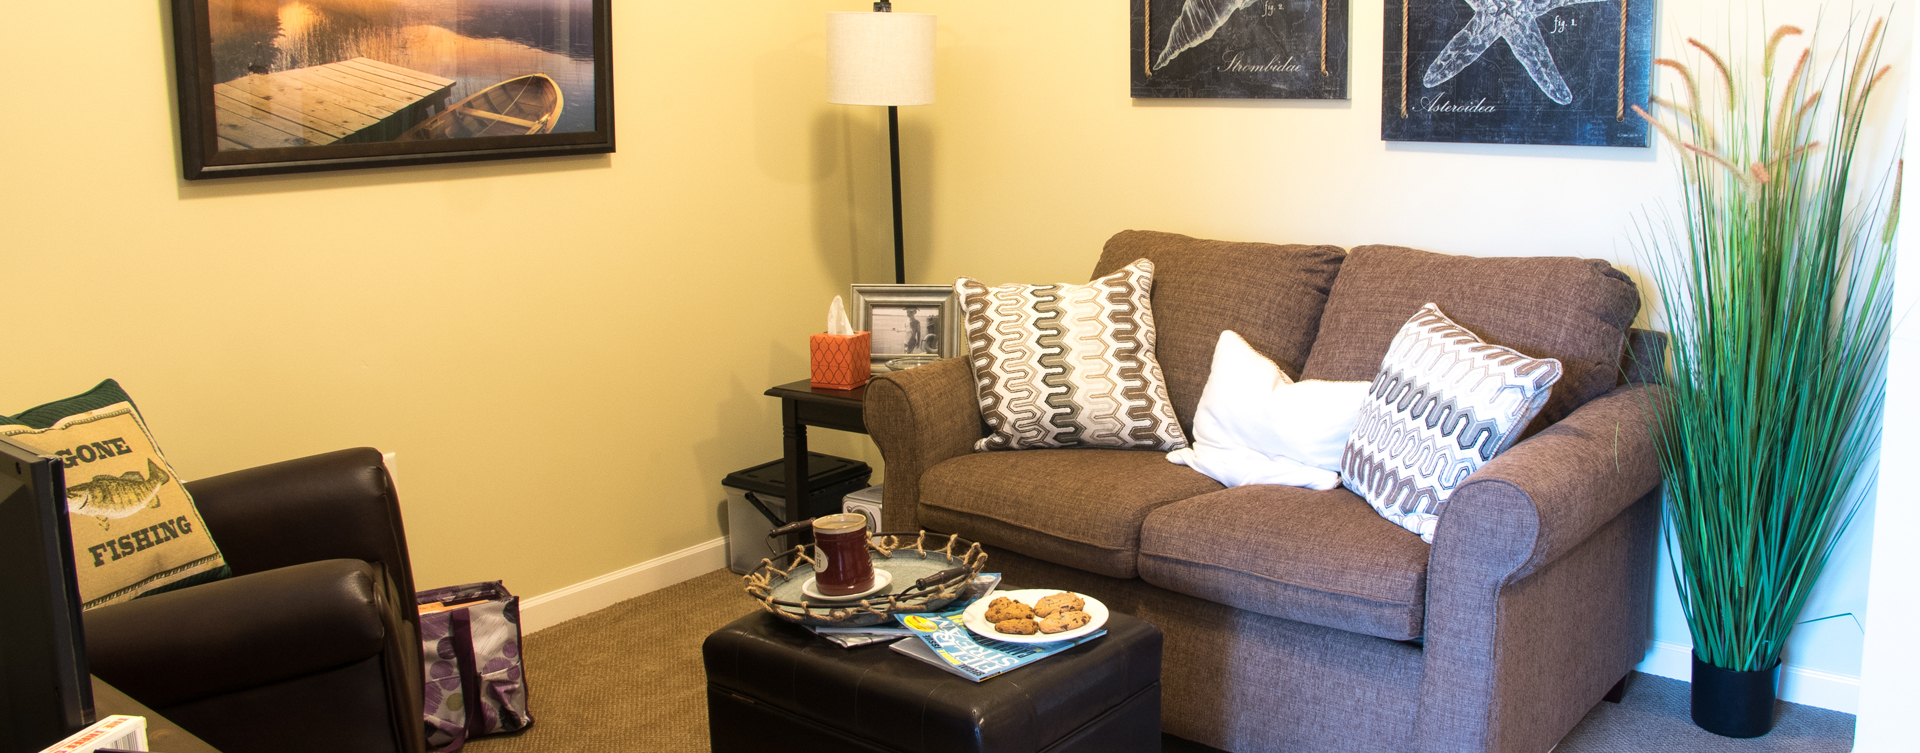 Personalize and decorate to your unique tastes an apartment at Bickford of Chesterfield